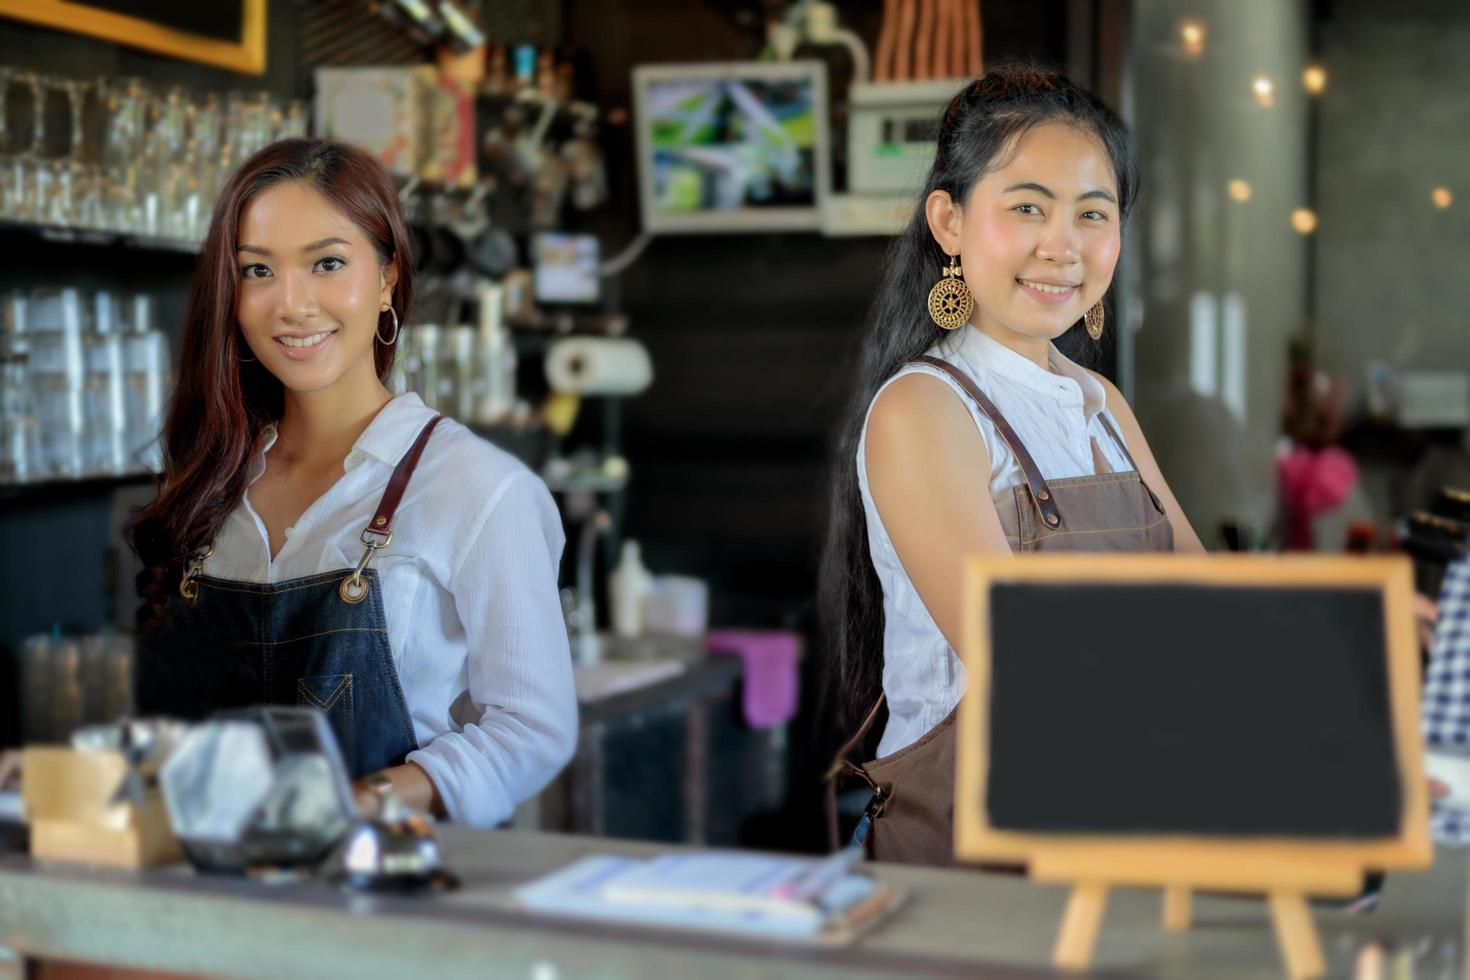 Female Asian baristas smiling behind coffee shop counter photo